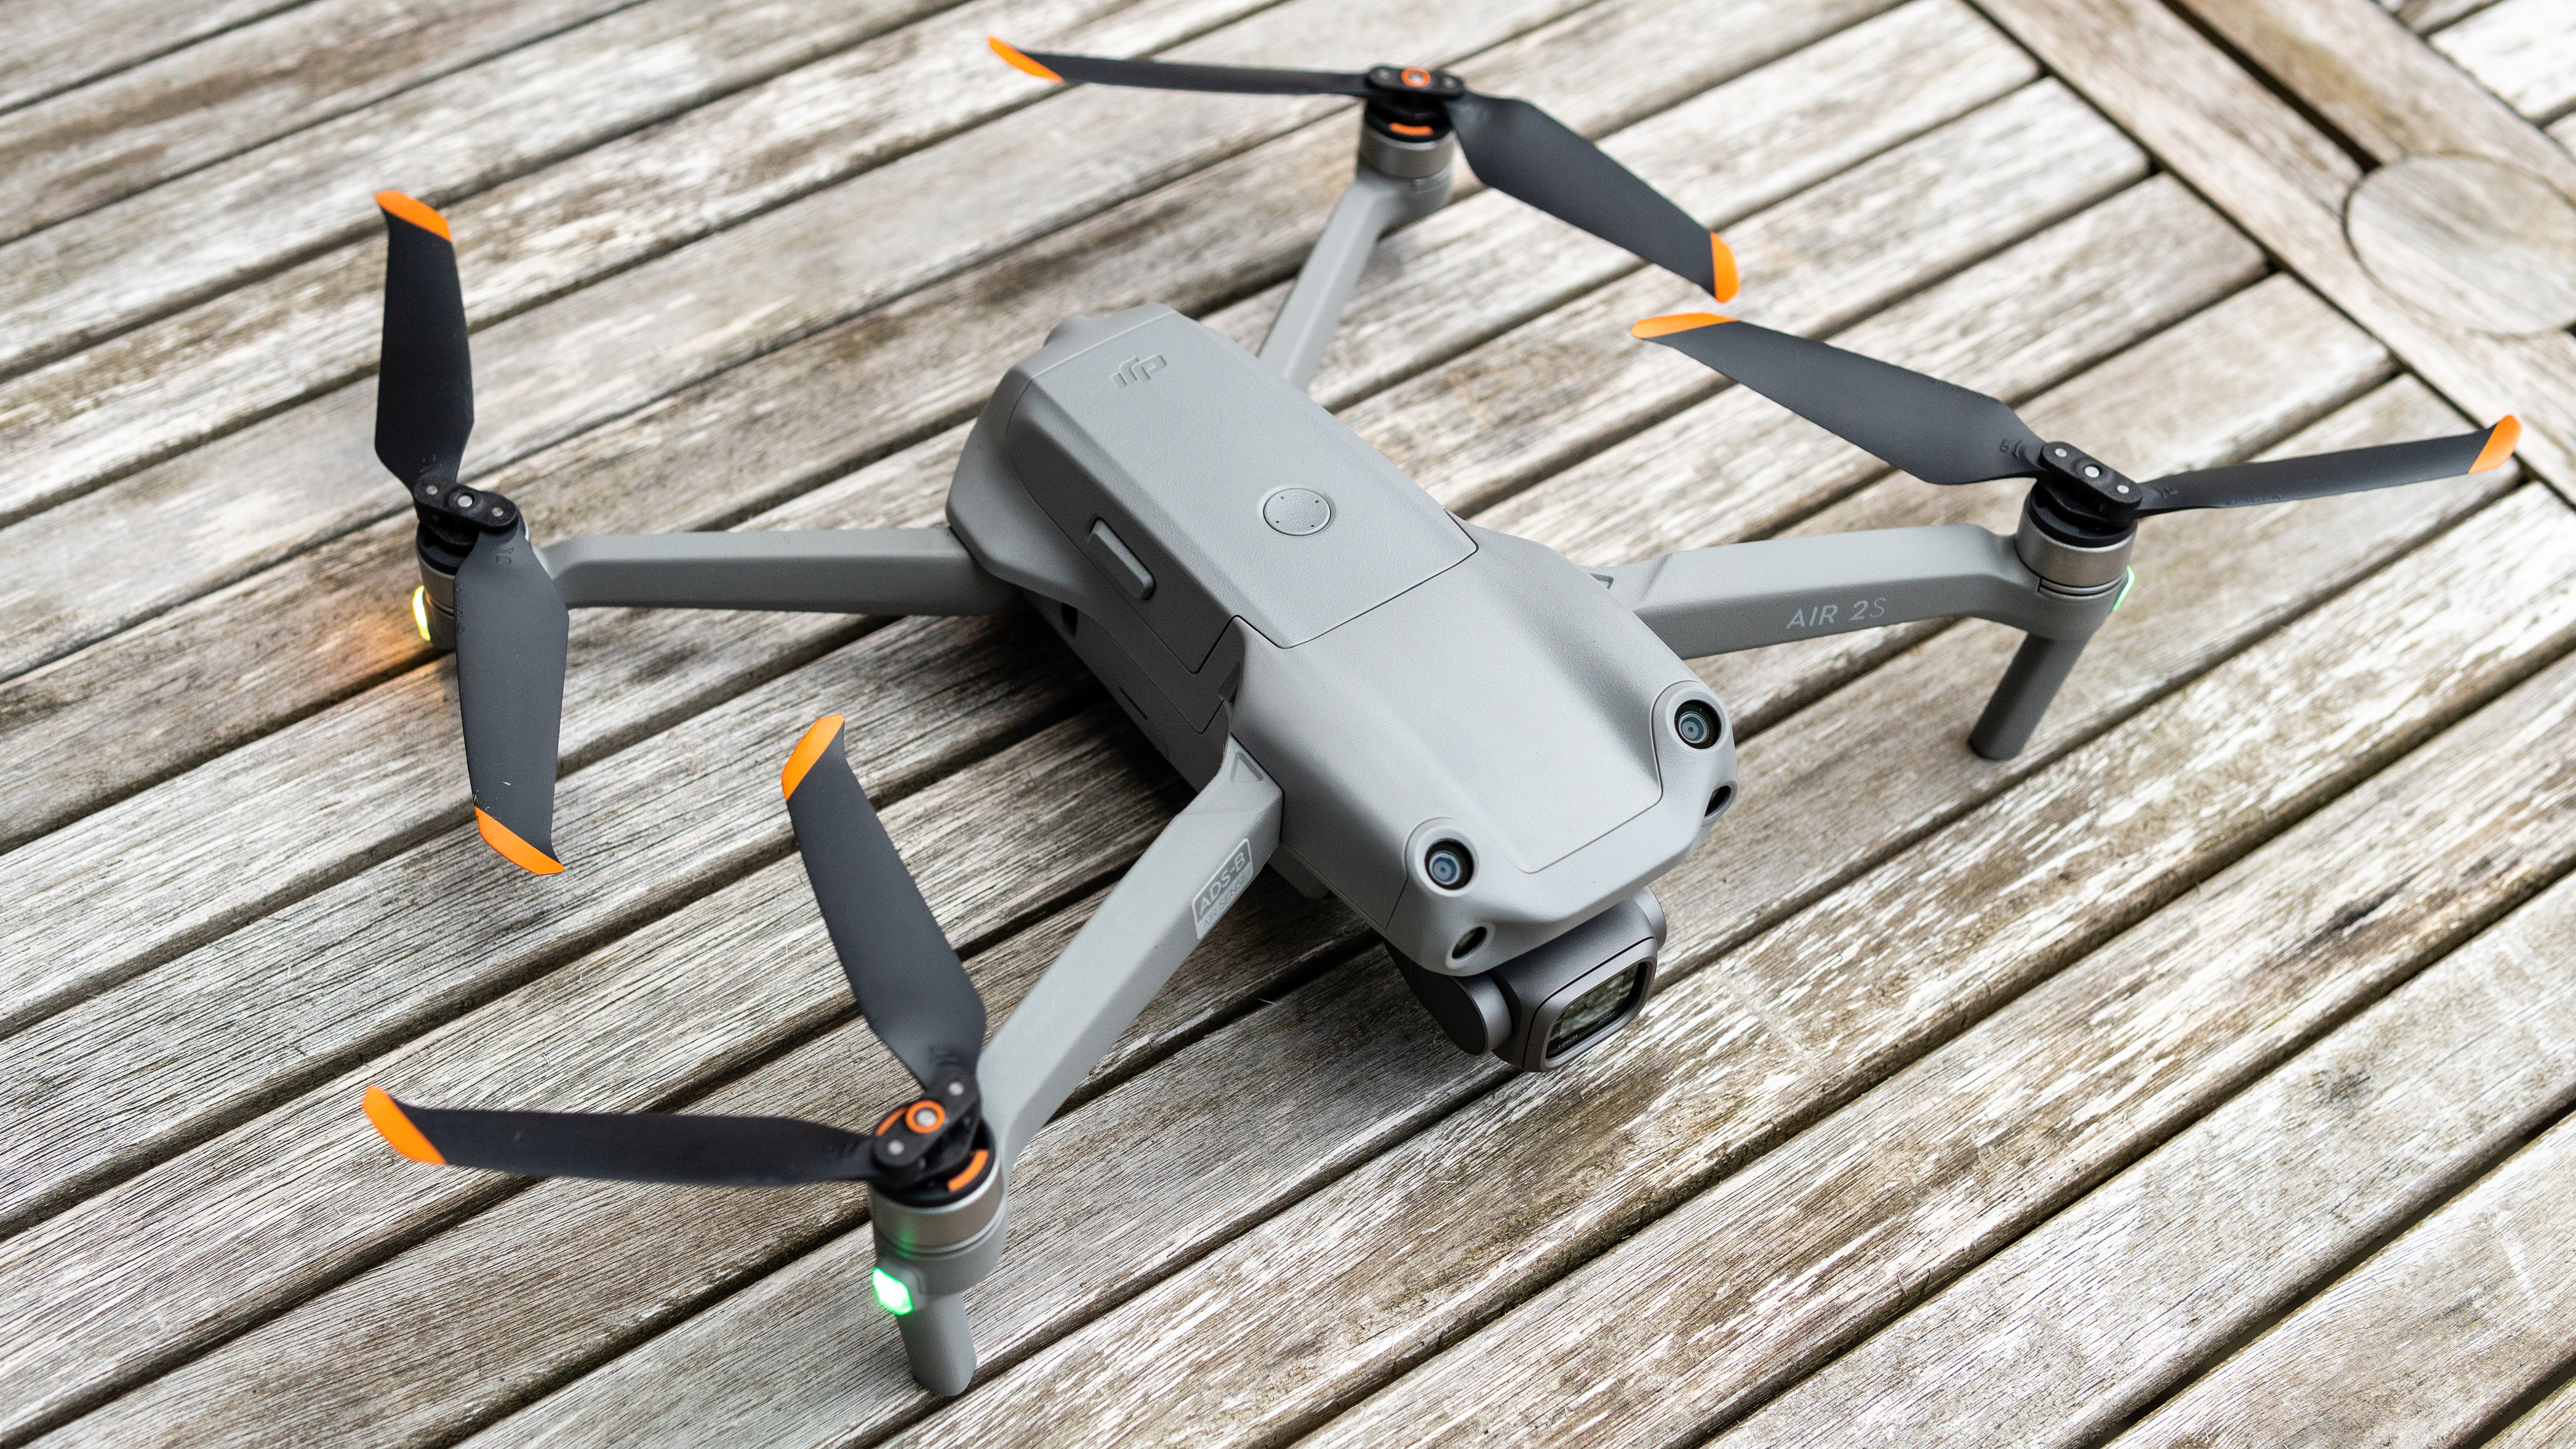 DJI aire 2S